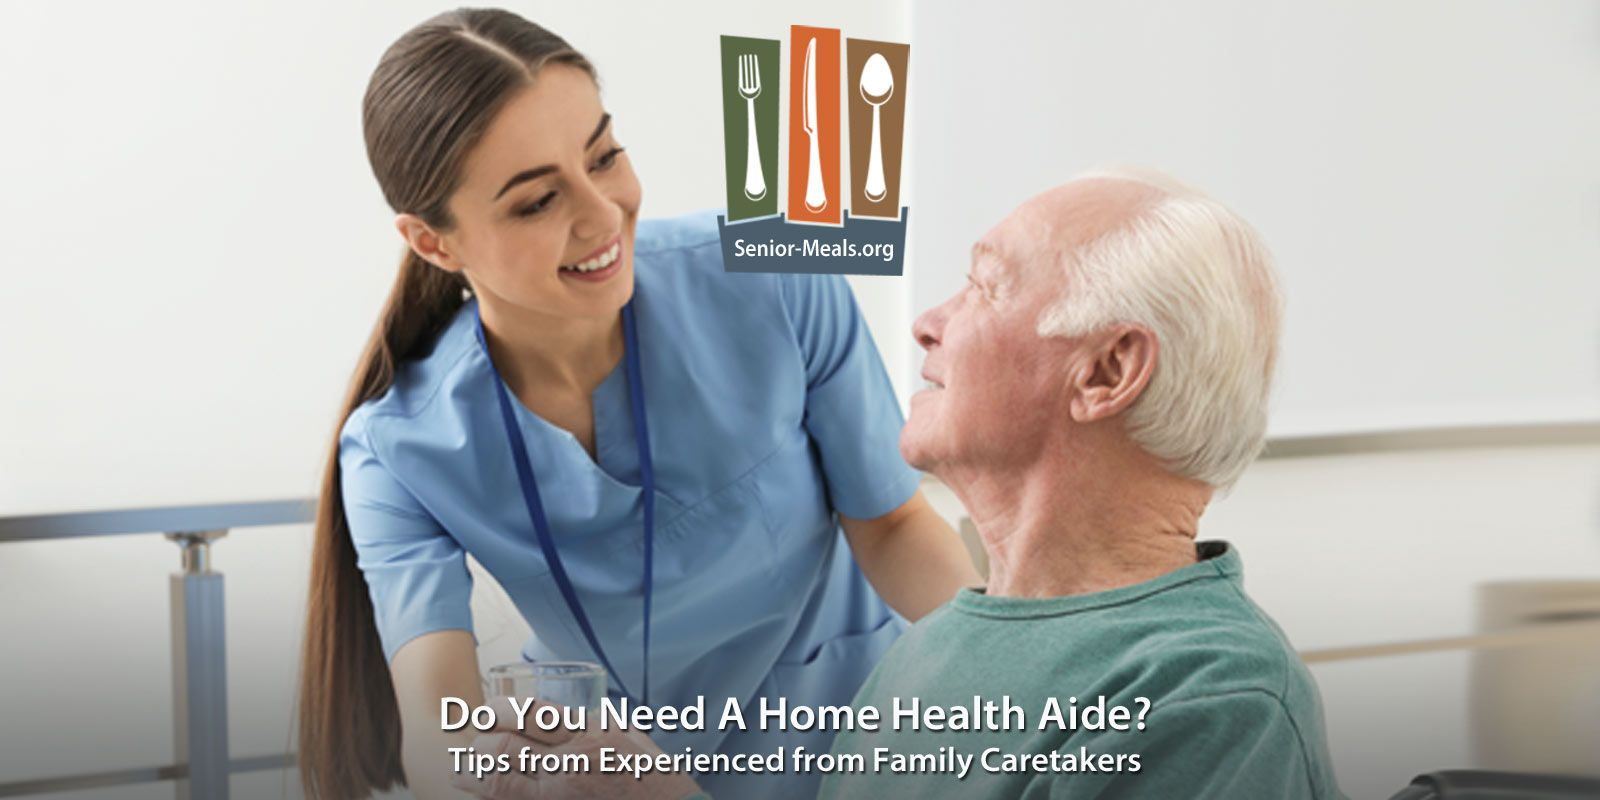 Do you need a home health aid to care for your loved ones